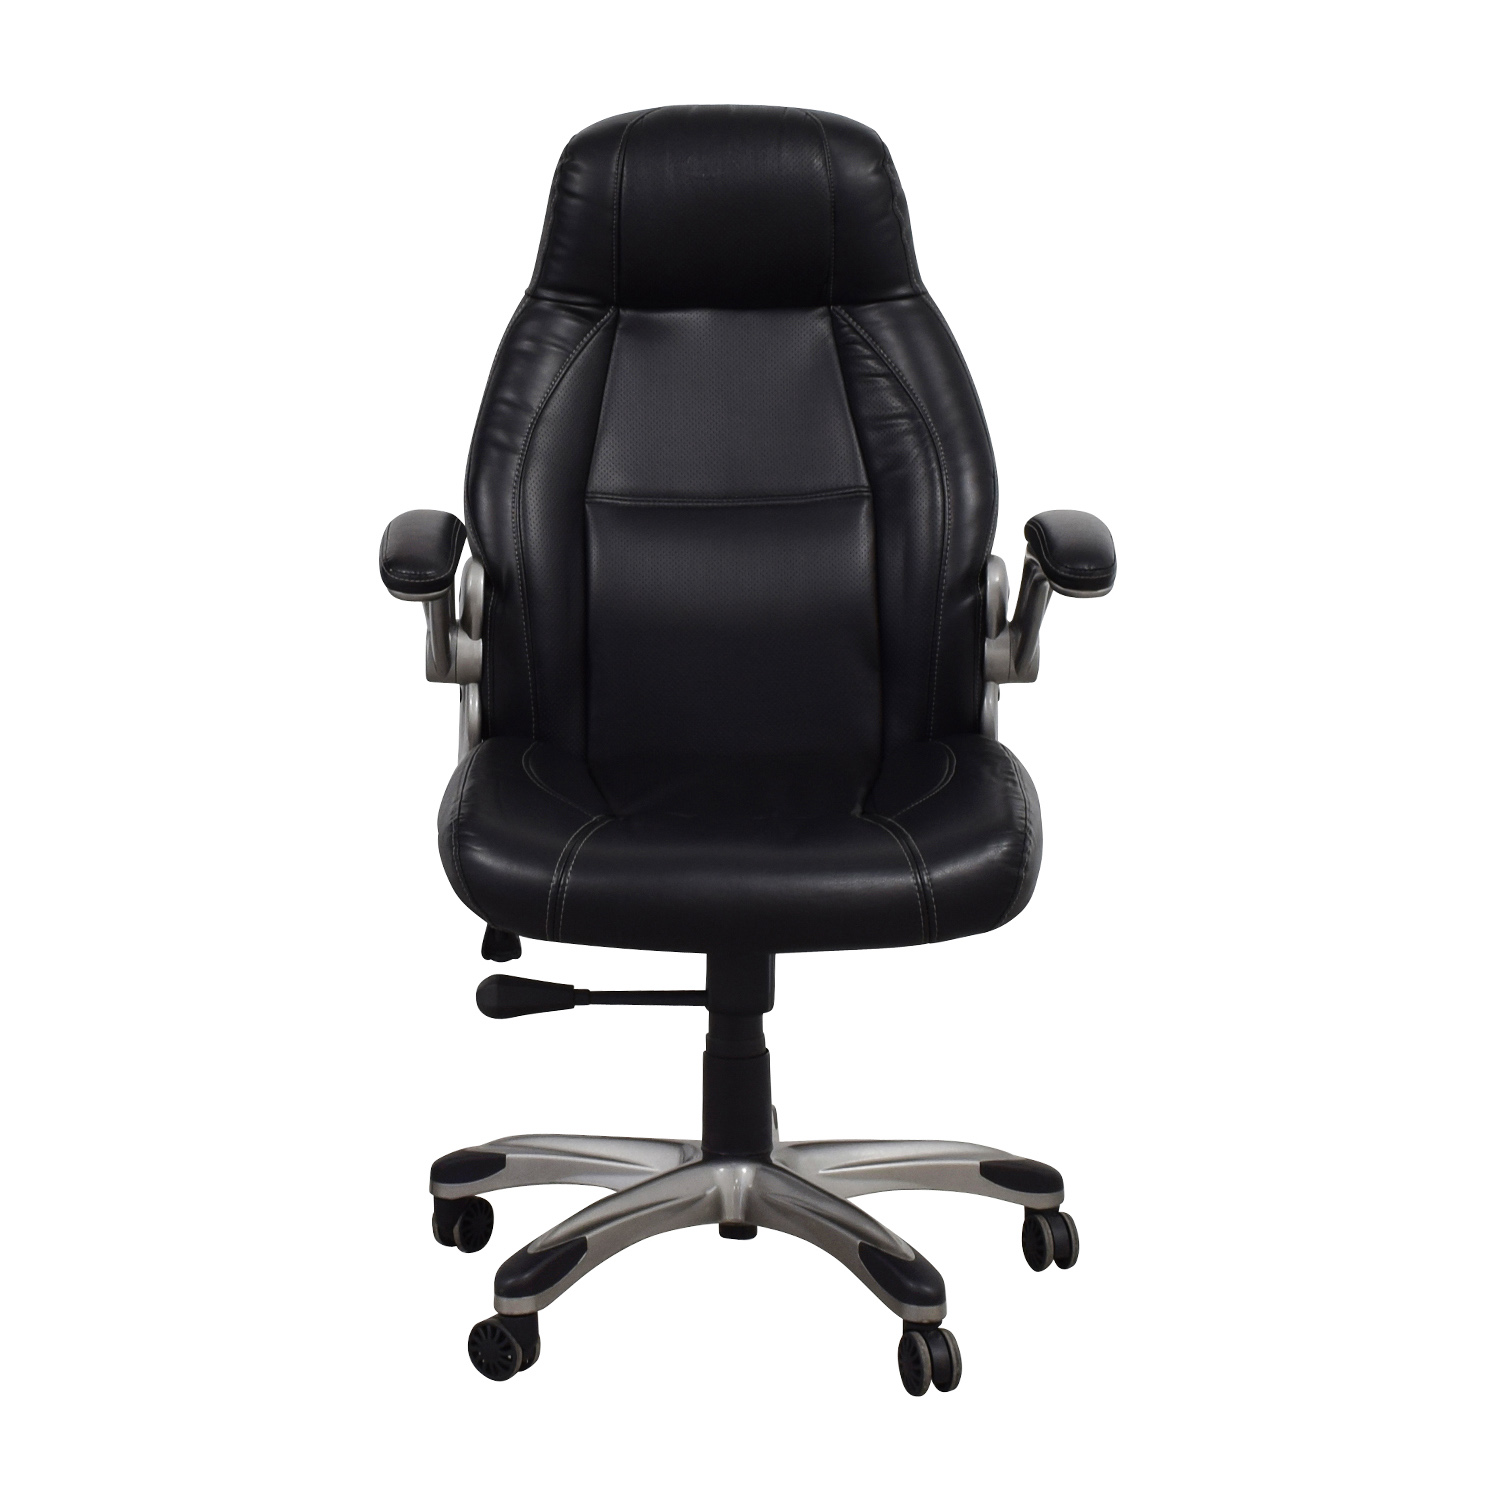 Office Chairs At Staples 64 Off Staples Staples Torrent High Back Executive Chair In Black Chairs